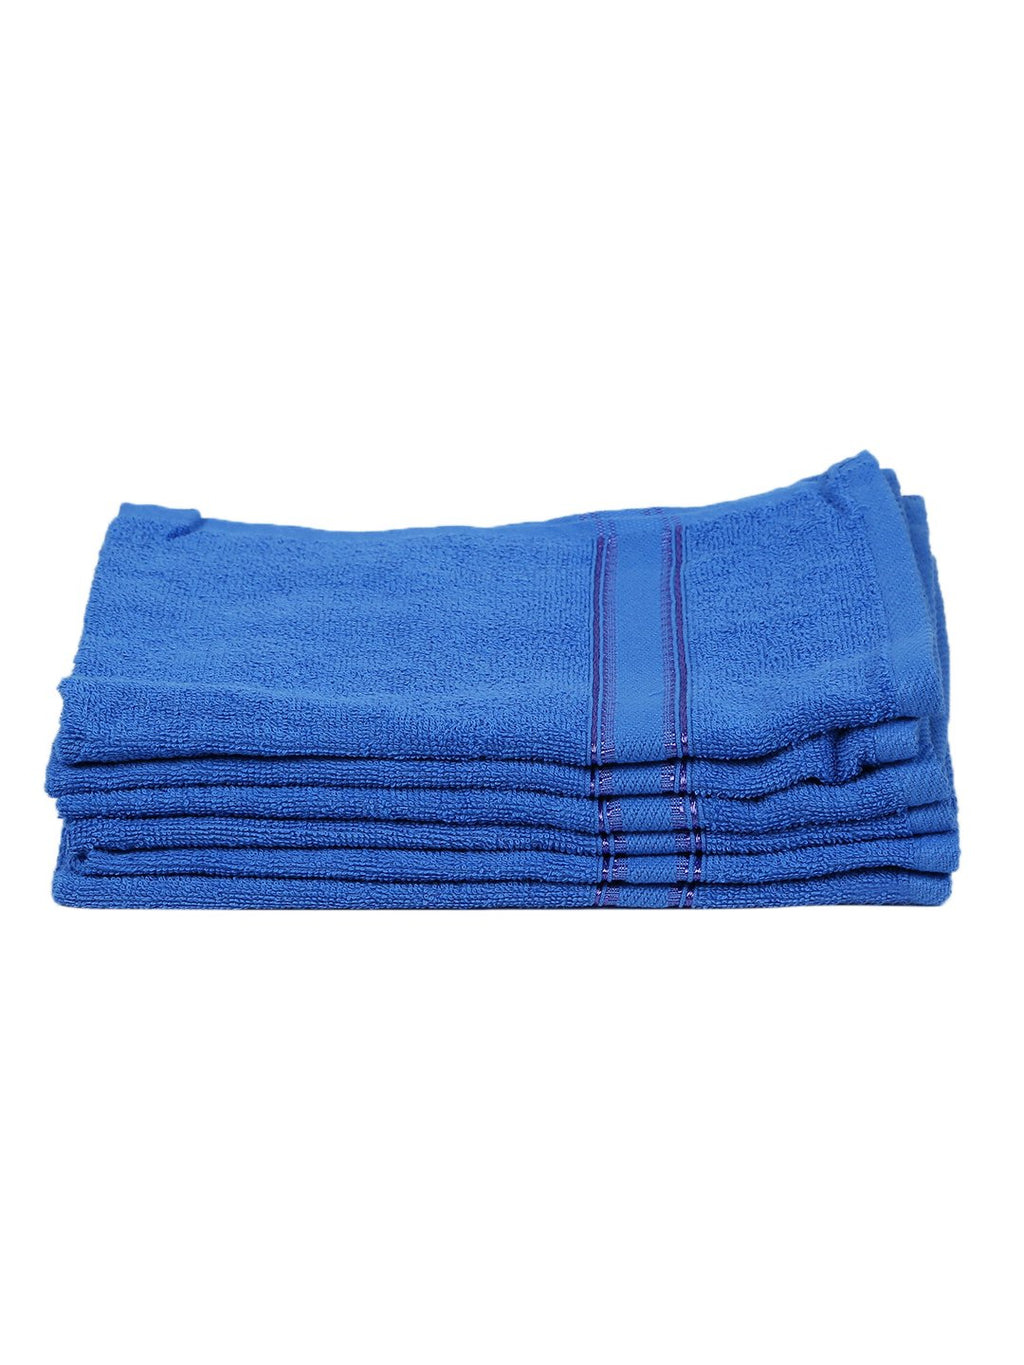 Blue 100% Cotton 500 GSM Hand Towel (SET OF 6)